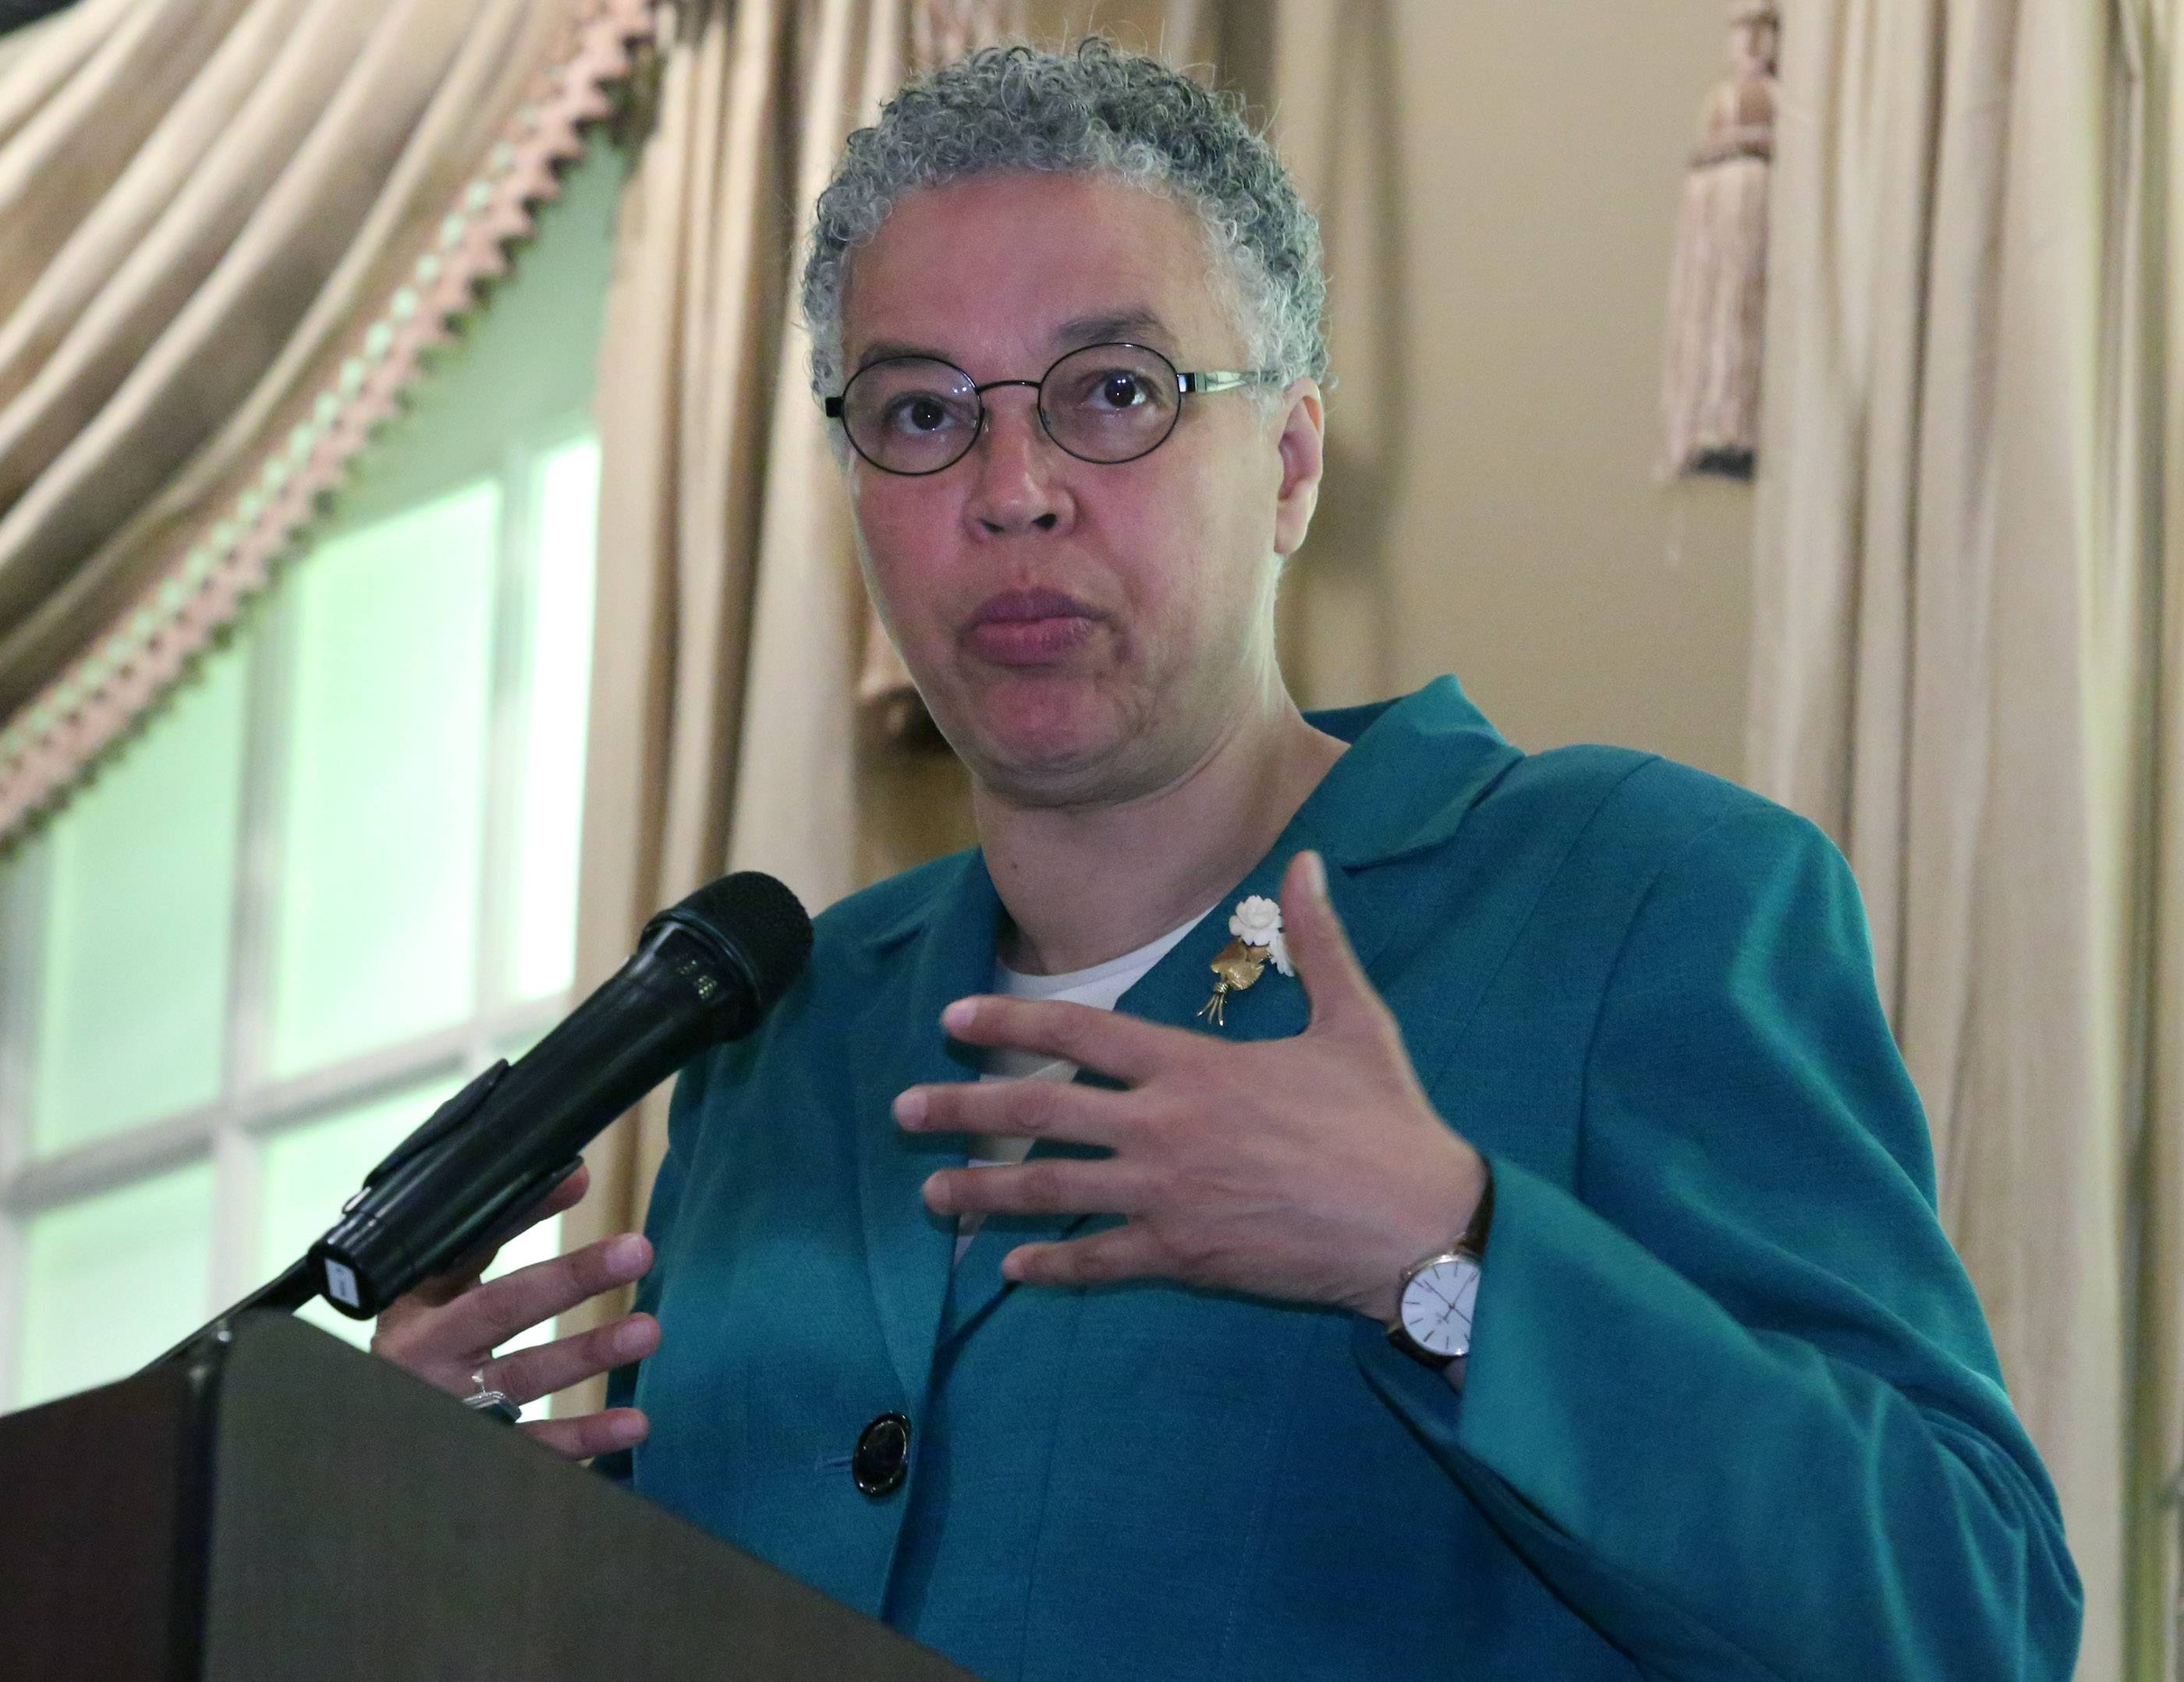 """Because of our position in the region, we know that strategic investments locally can have significant impacts regionally,"" Preckwinkle told a business gathering Tuesday in Palatine."